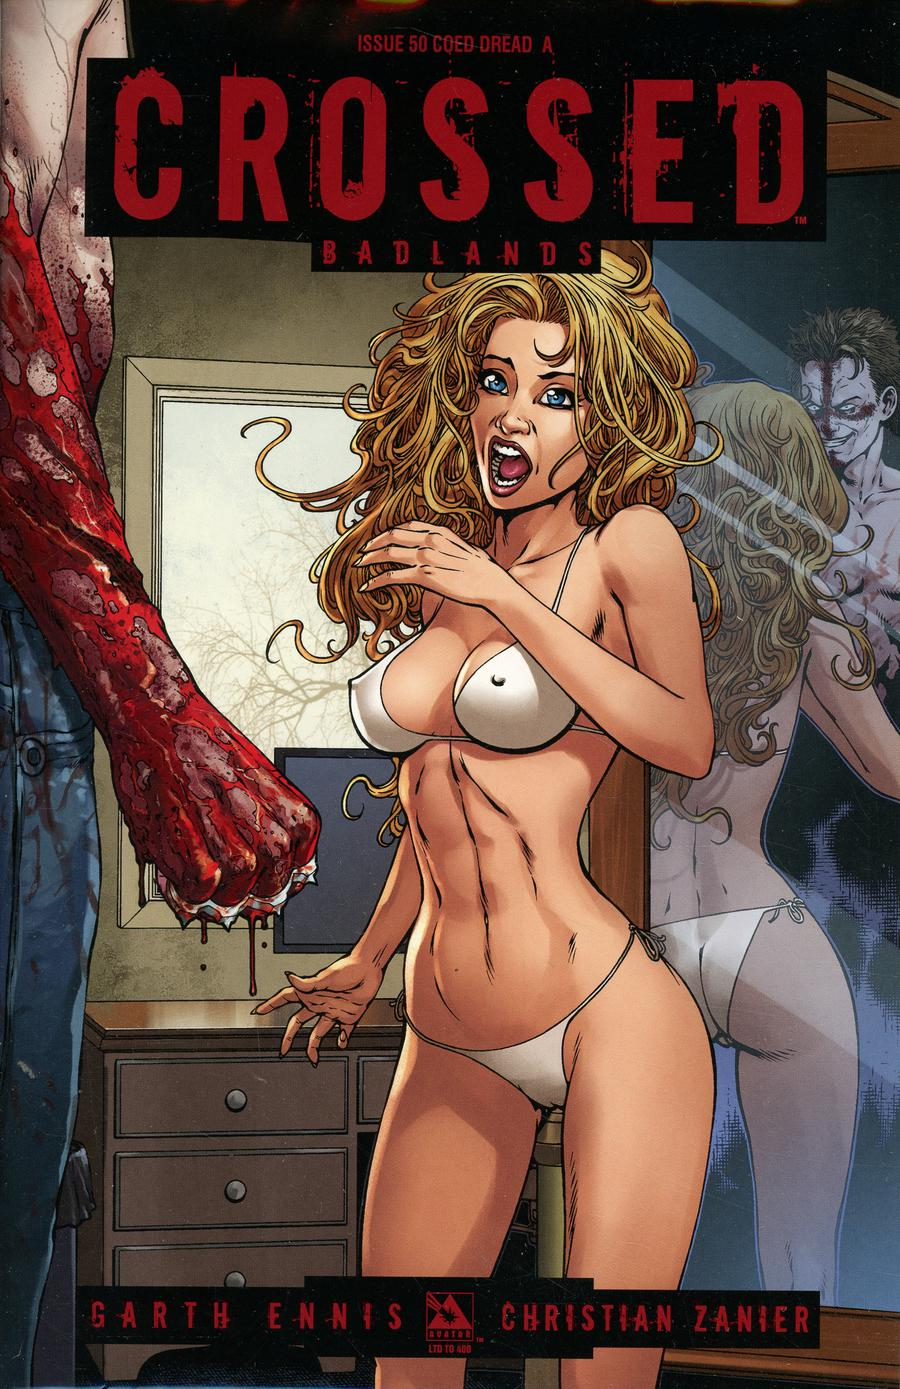 Crossed Badlands #50 Cover R Coed Dread A Cover